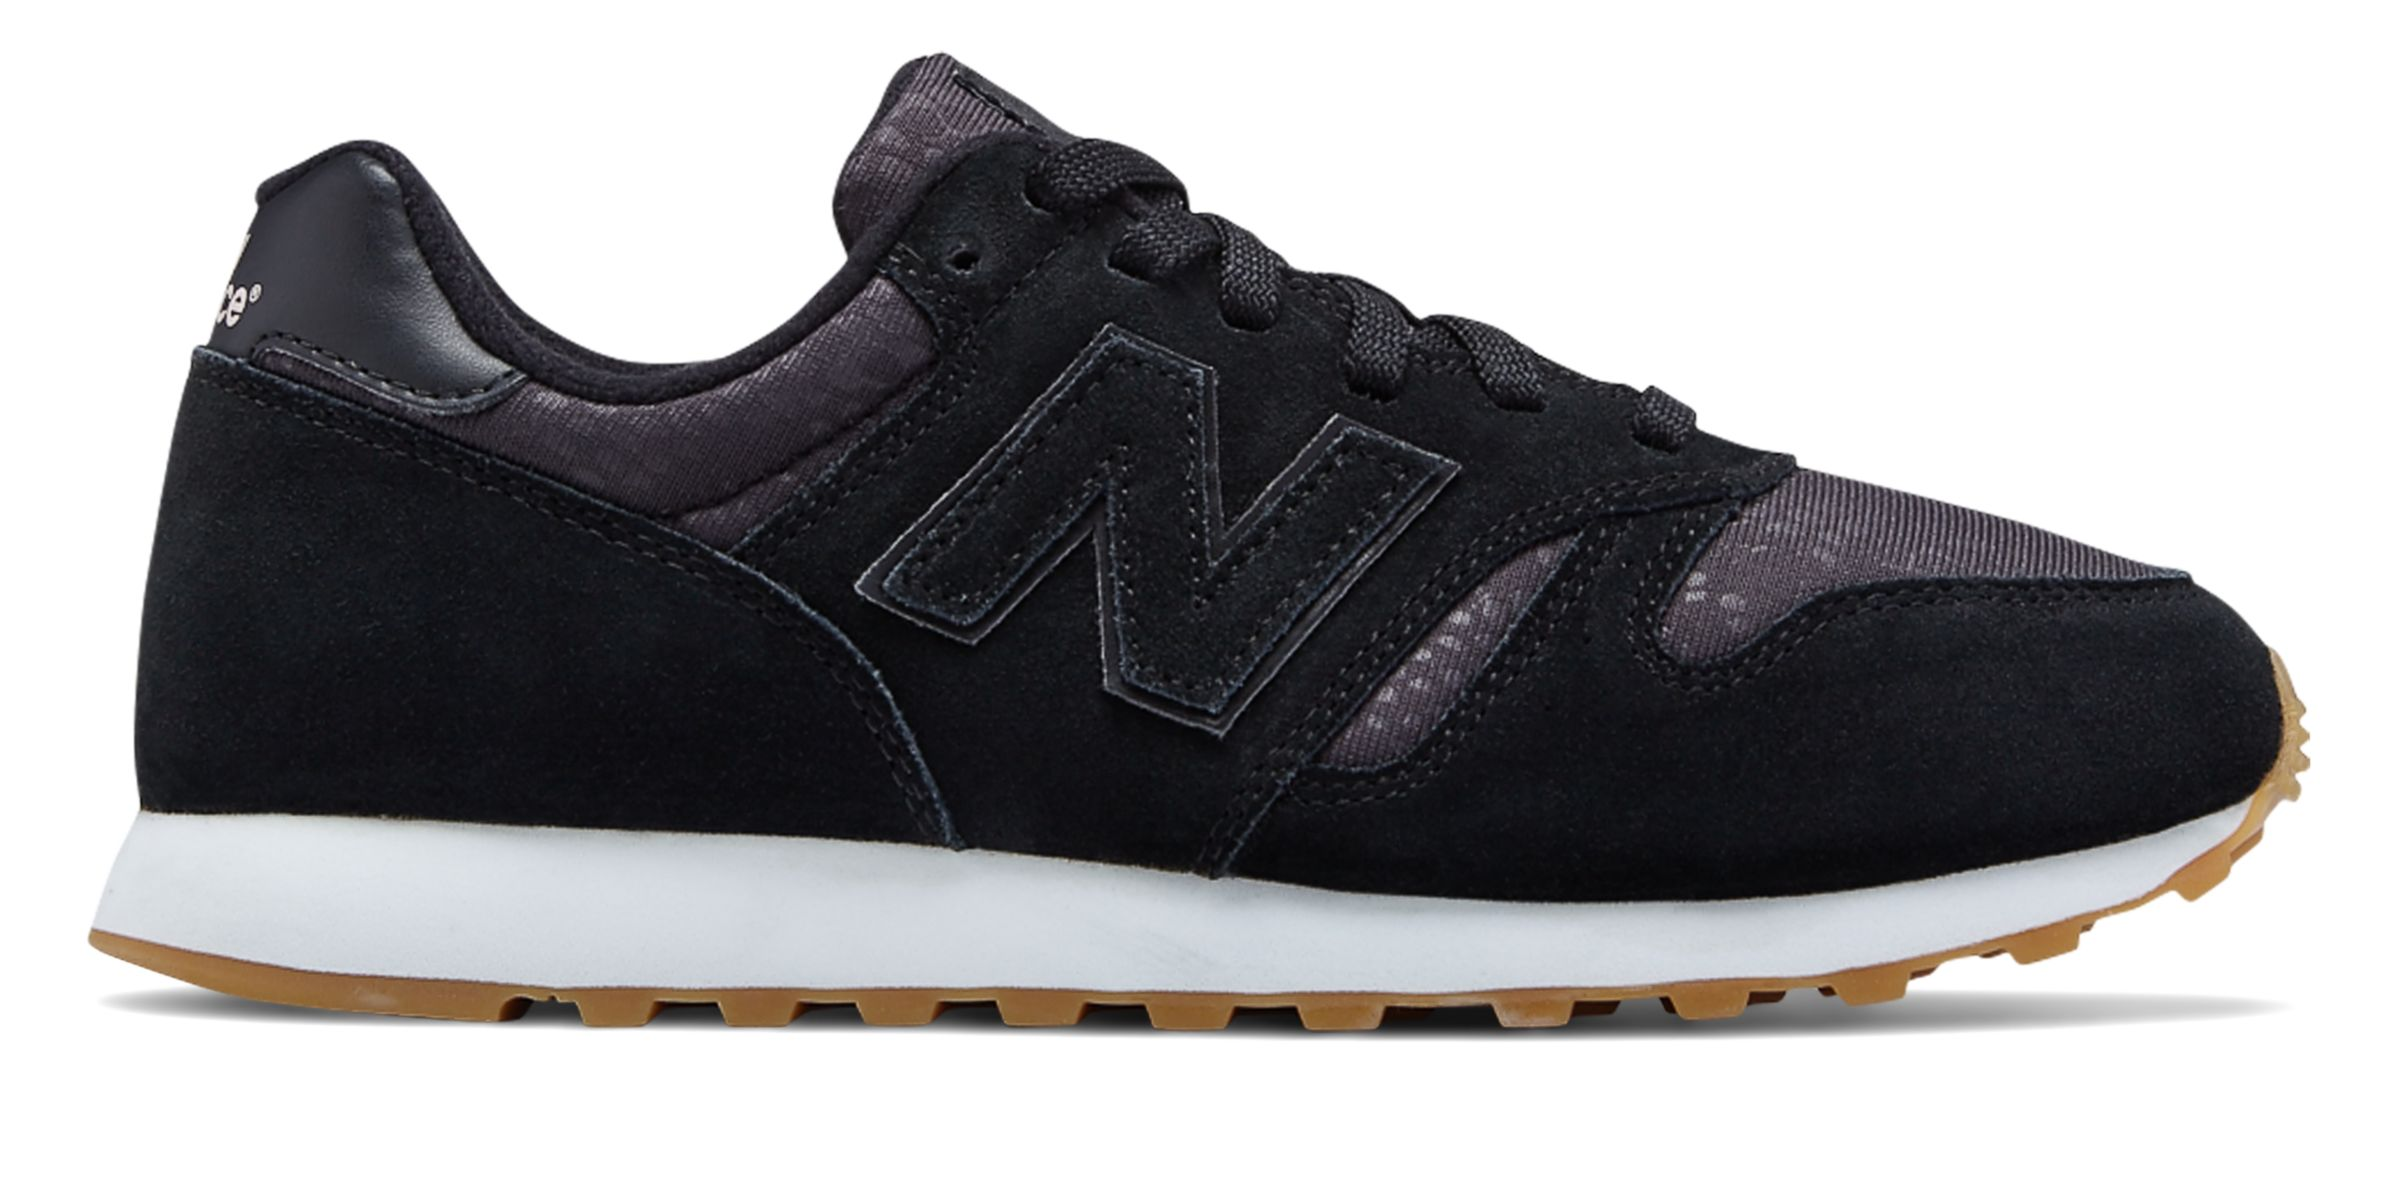 NB 373 Suede, Black with Pink